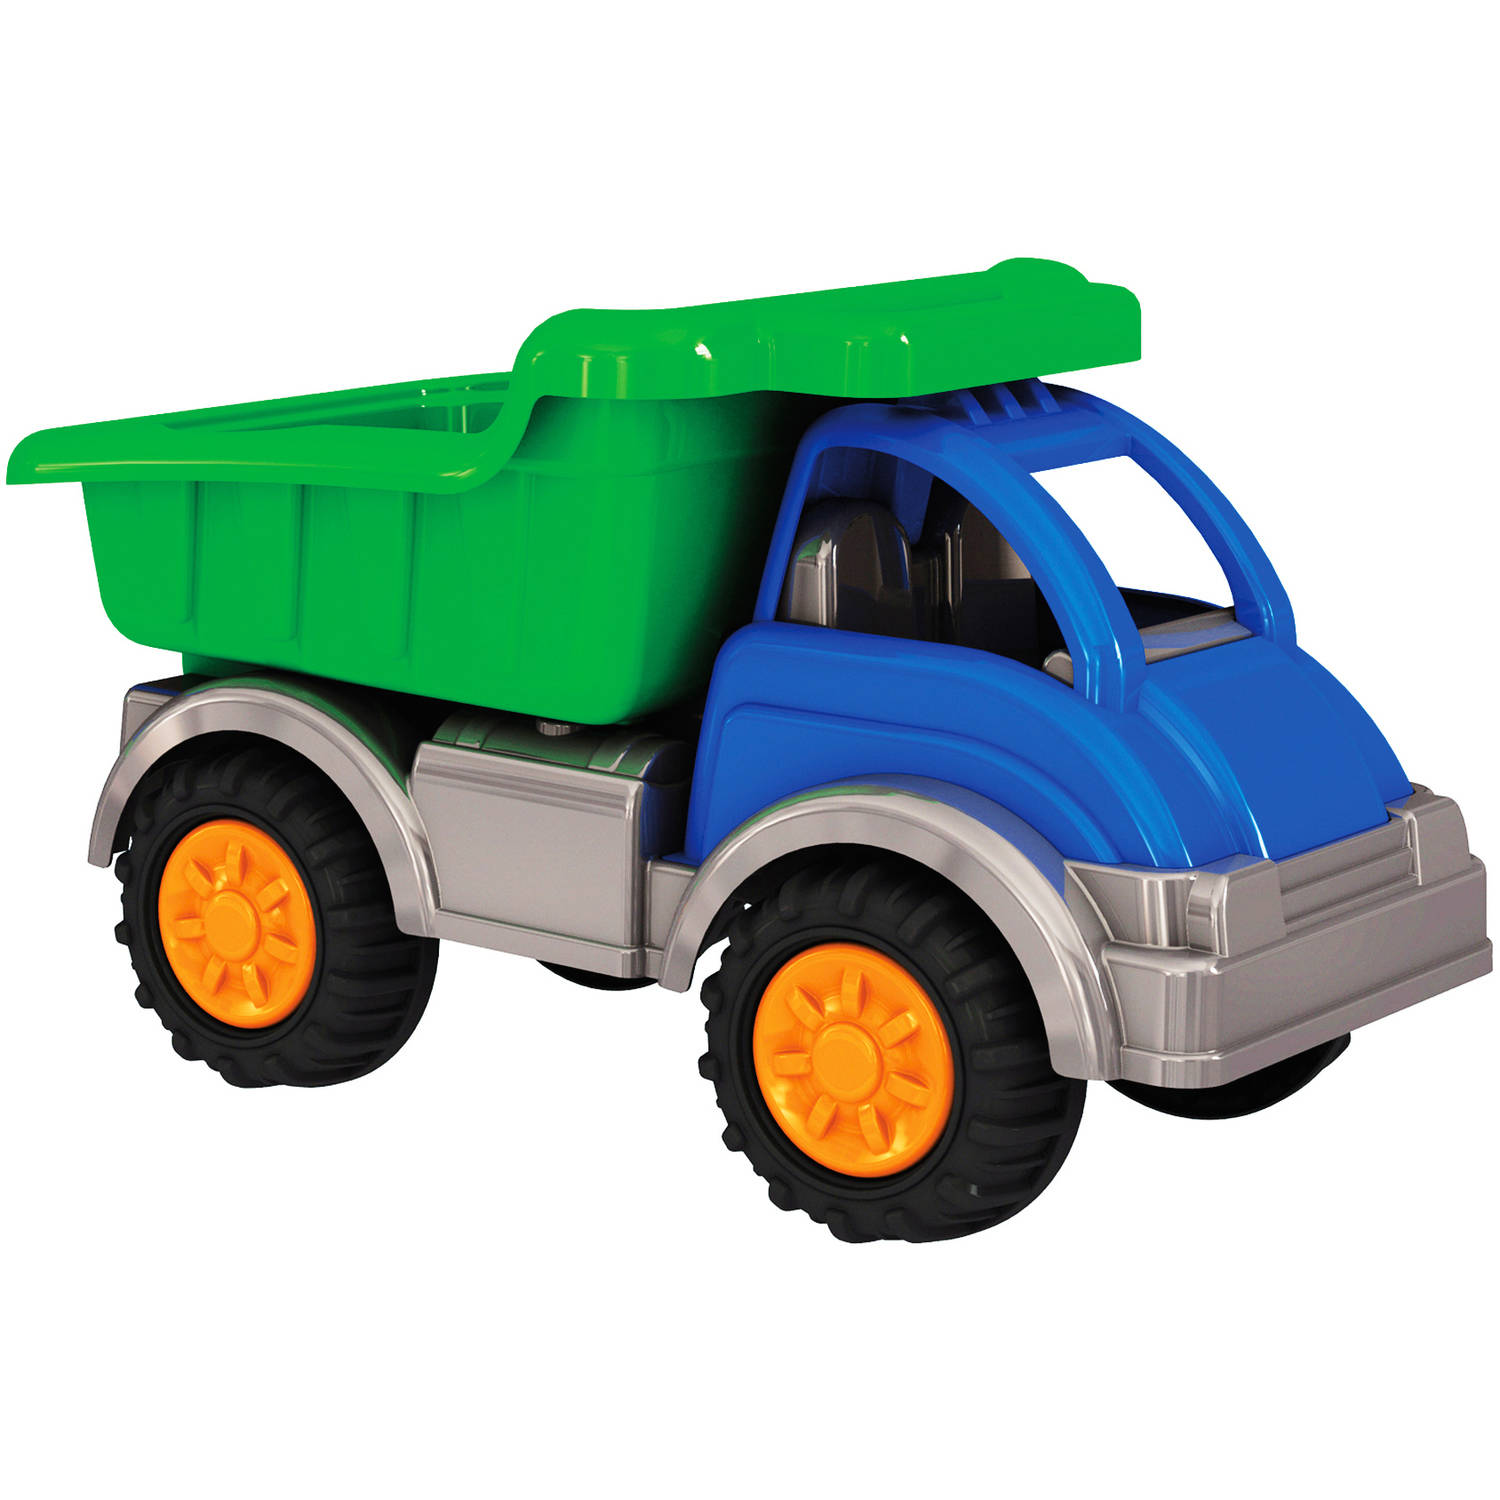 American Plastic Toys Gigantic Dump Truck by